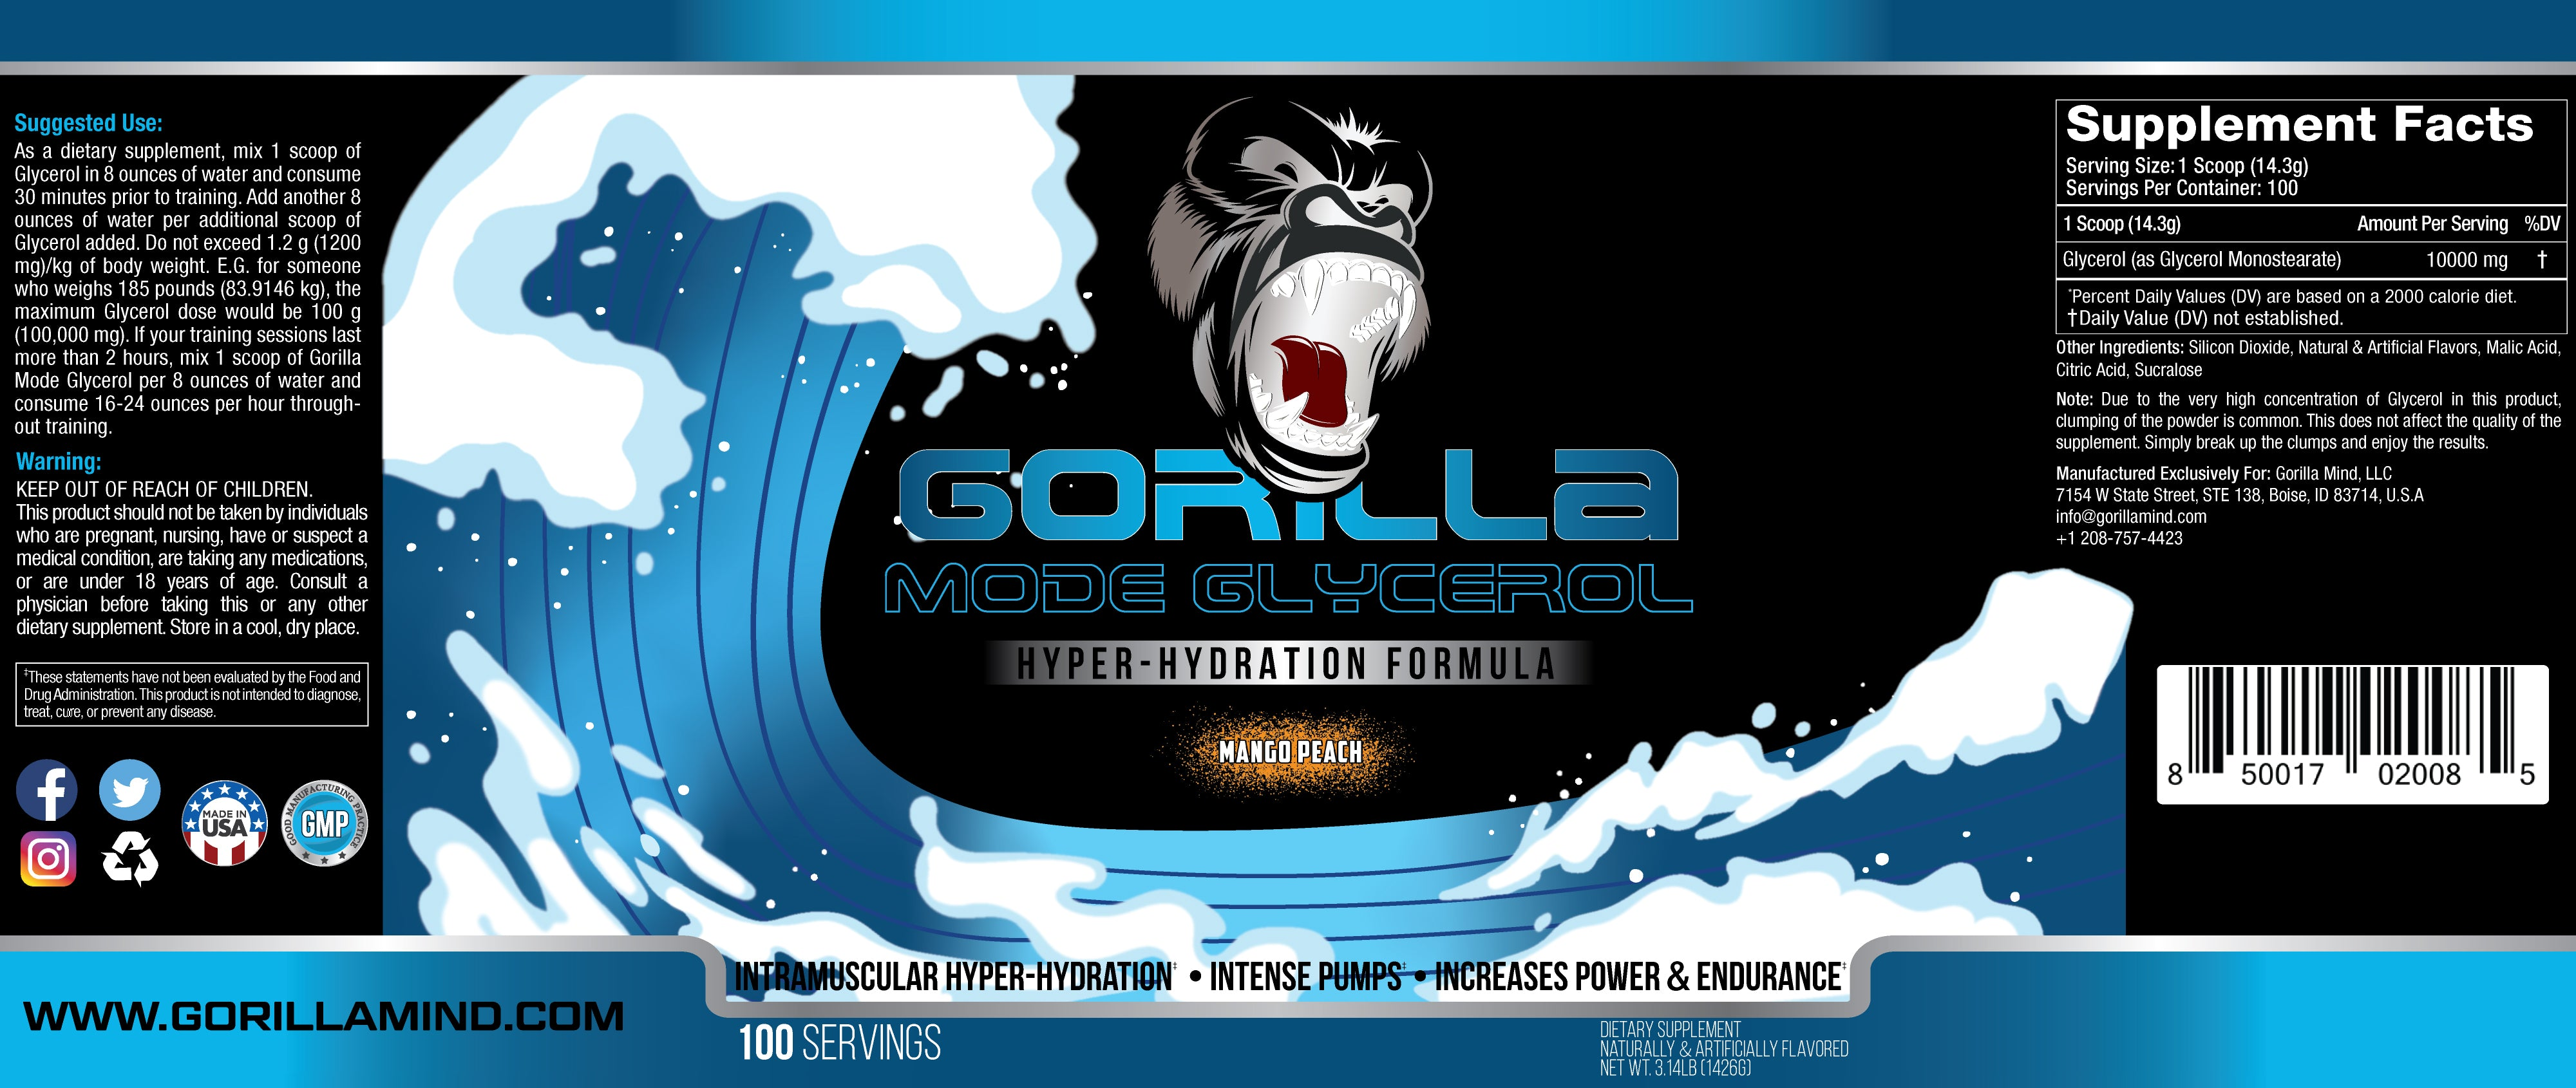 Gorilla Mode Glycerol Supplement Facts